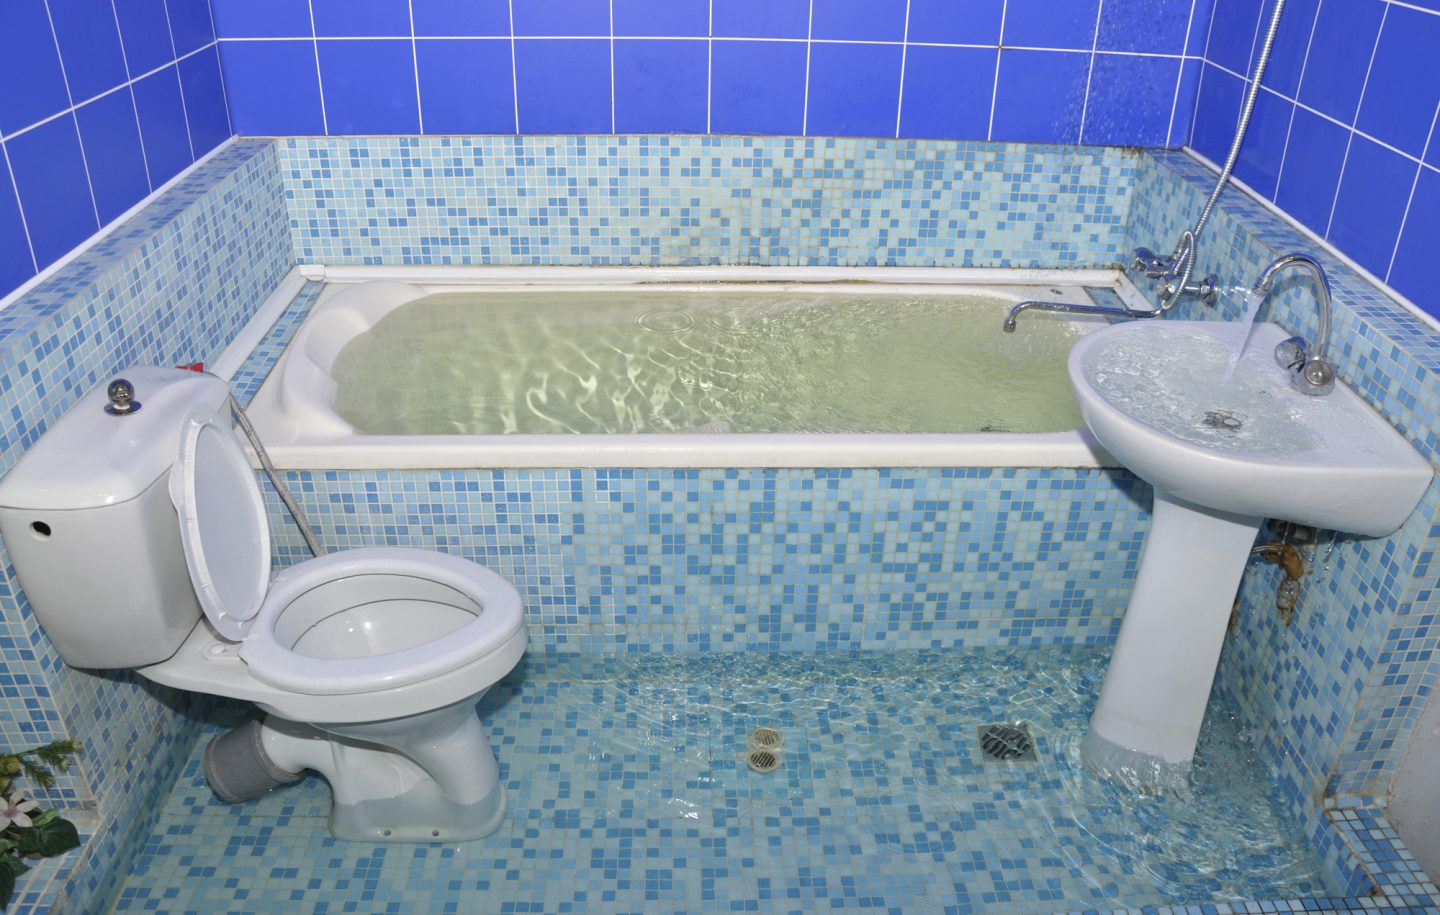 What to Do if My Toilet Overflows?